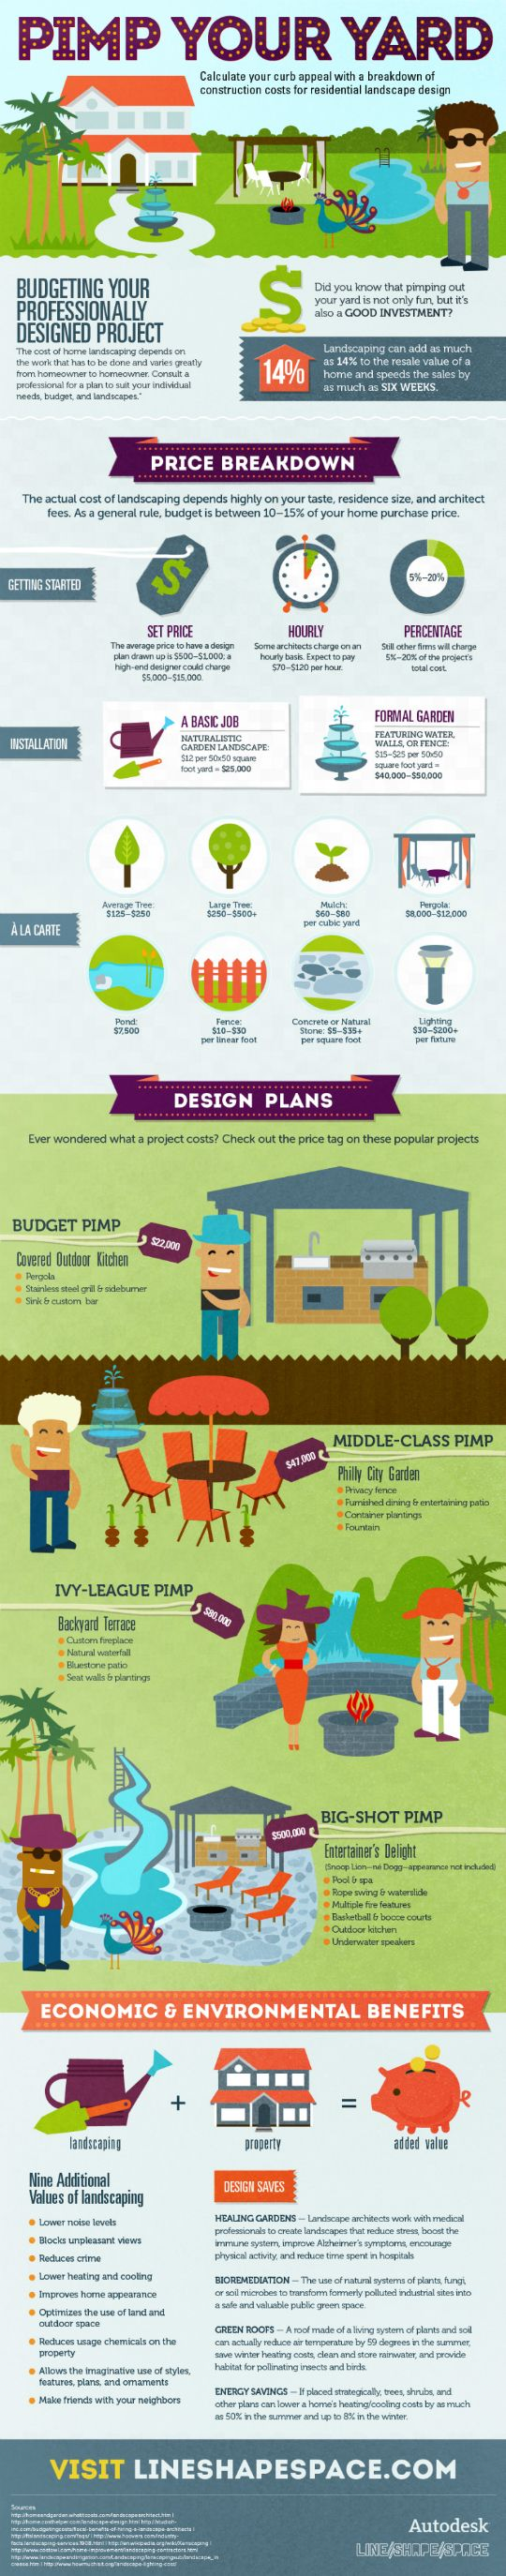 Pimp Your Yard: Landscape Architecture Infographic  by: KYLEE SWENSON GORDON